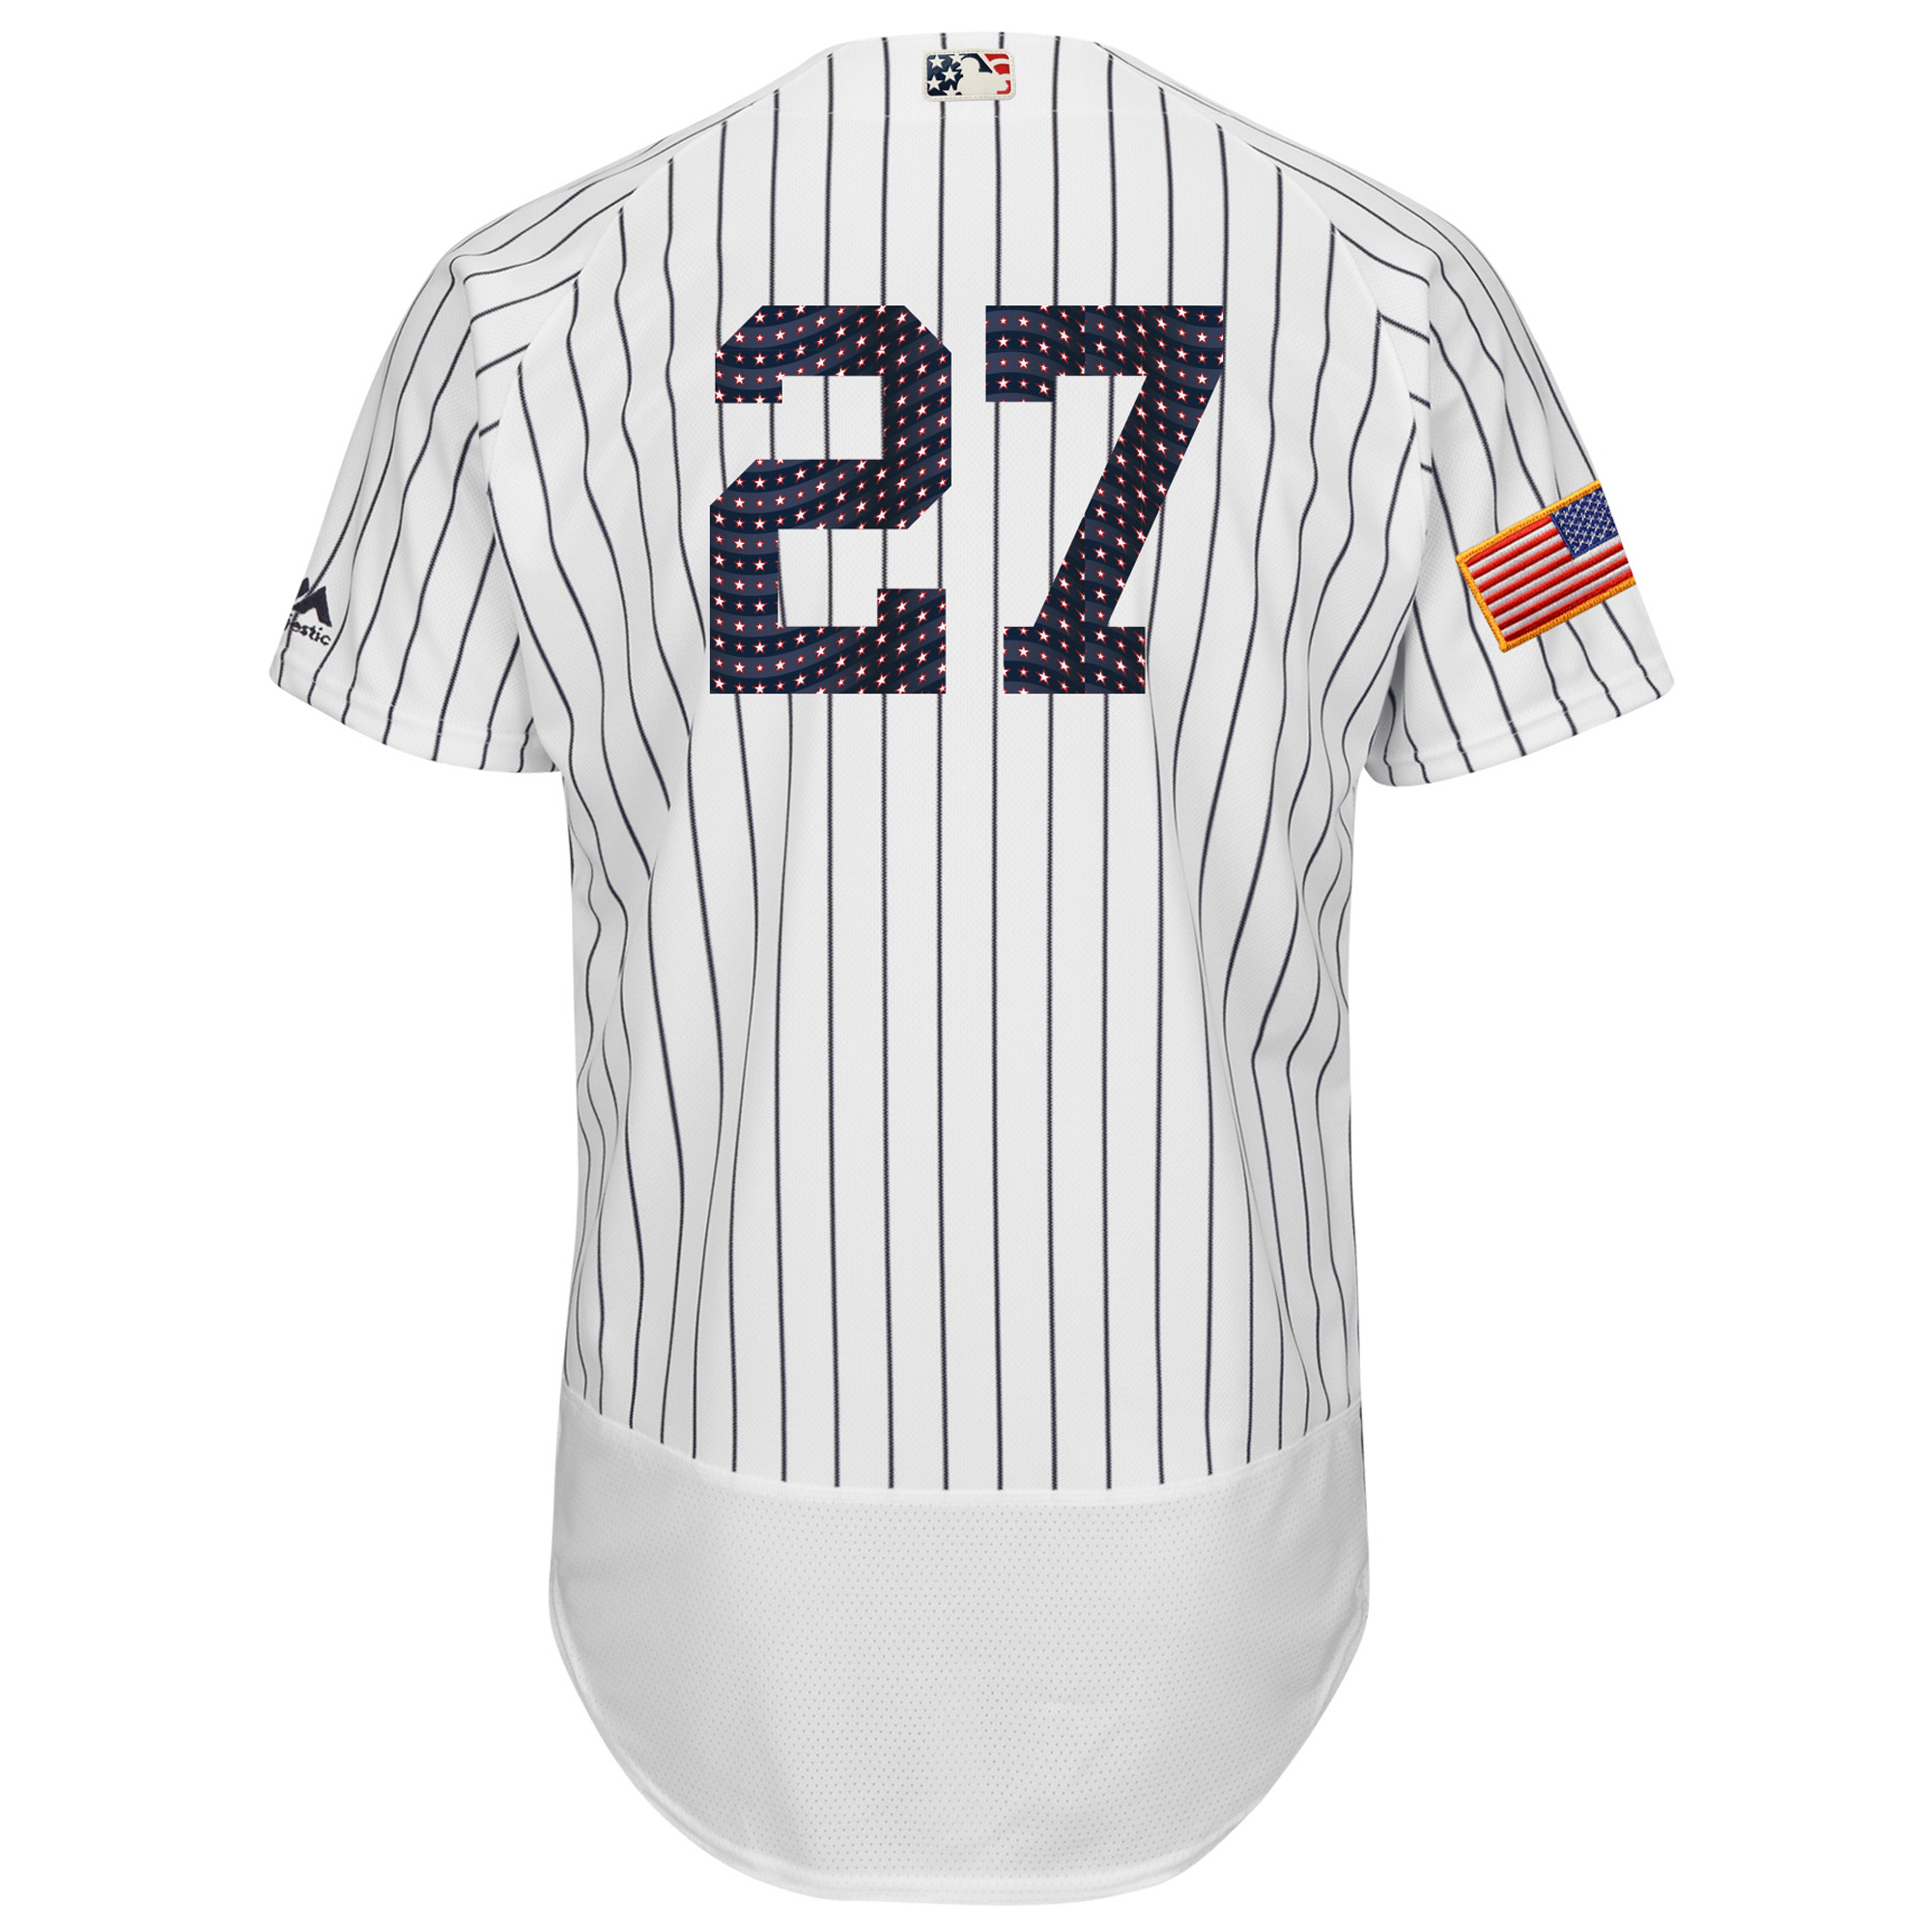 5fe940a46 Giancarlo Stanton New York Yankees Majestic 2018 Stars   Stripes Flex Base  Player Jersey - White - Walmart.com